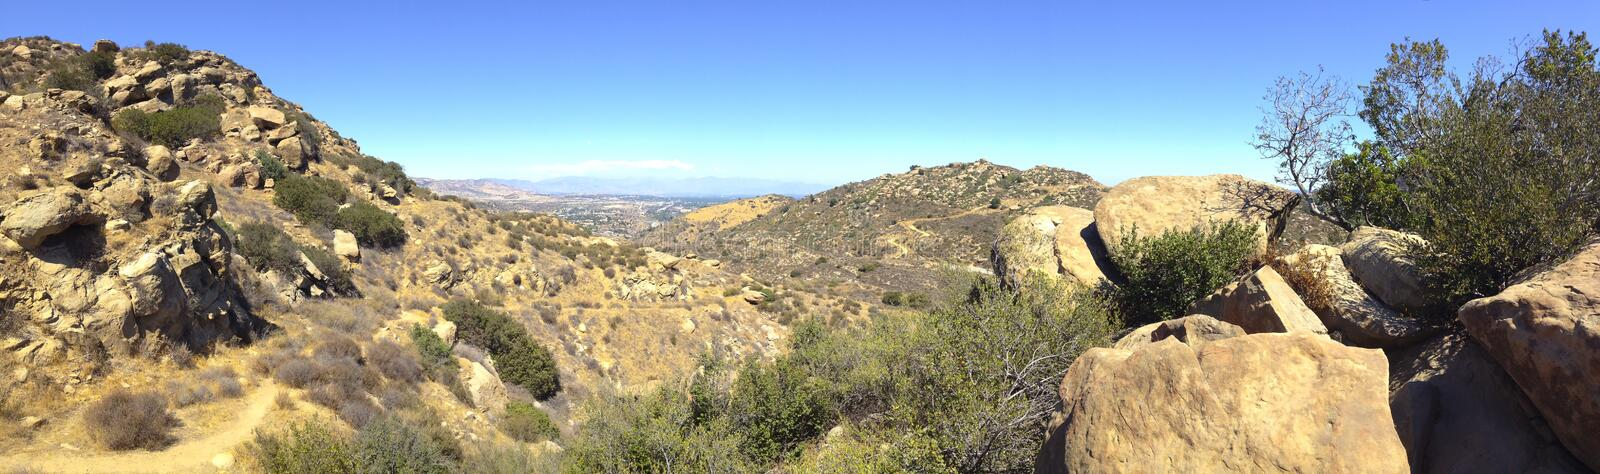 Download Rocky Peak Trails stock image. Image of valley, susana - 32096433